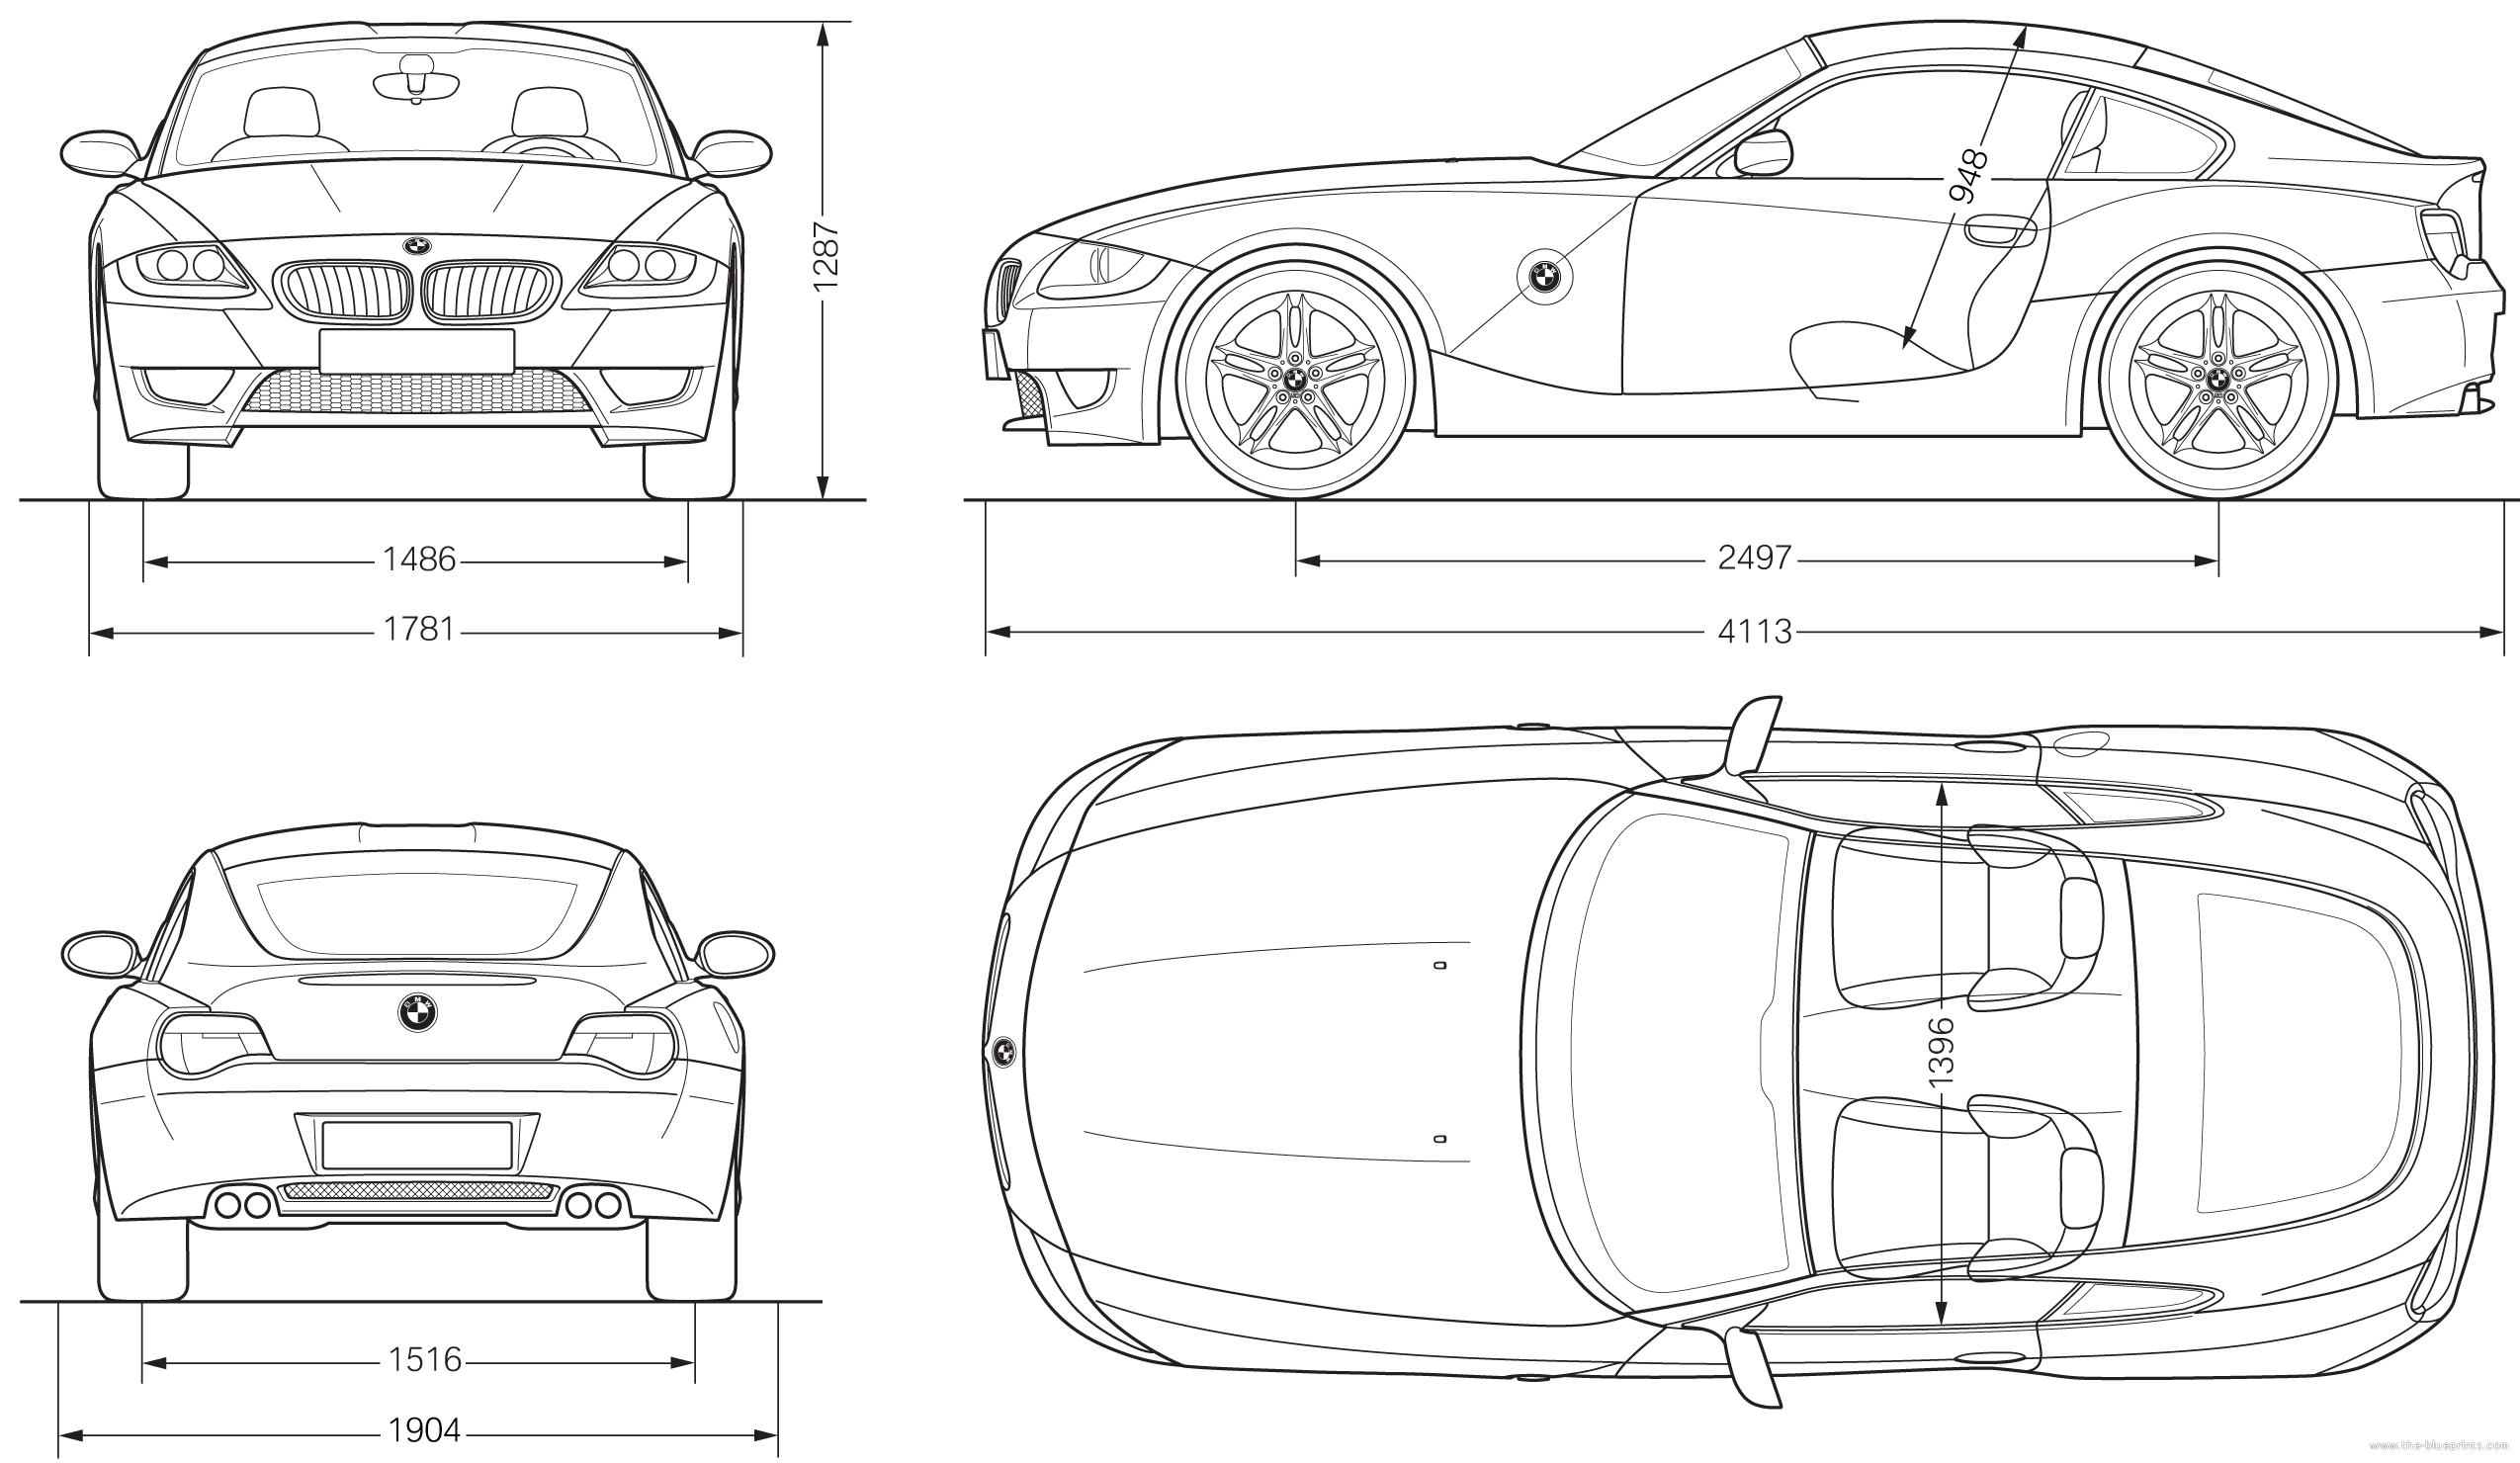 Blueprints > Cars > BMW > BMW Z4 M Coupe (E86) (2007)